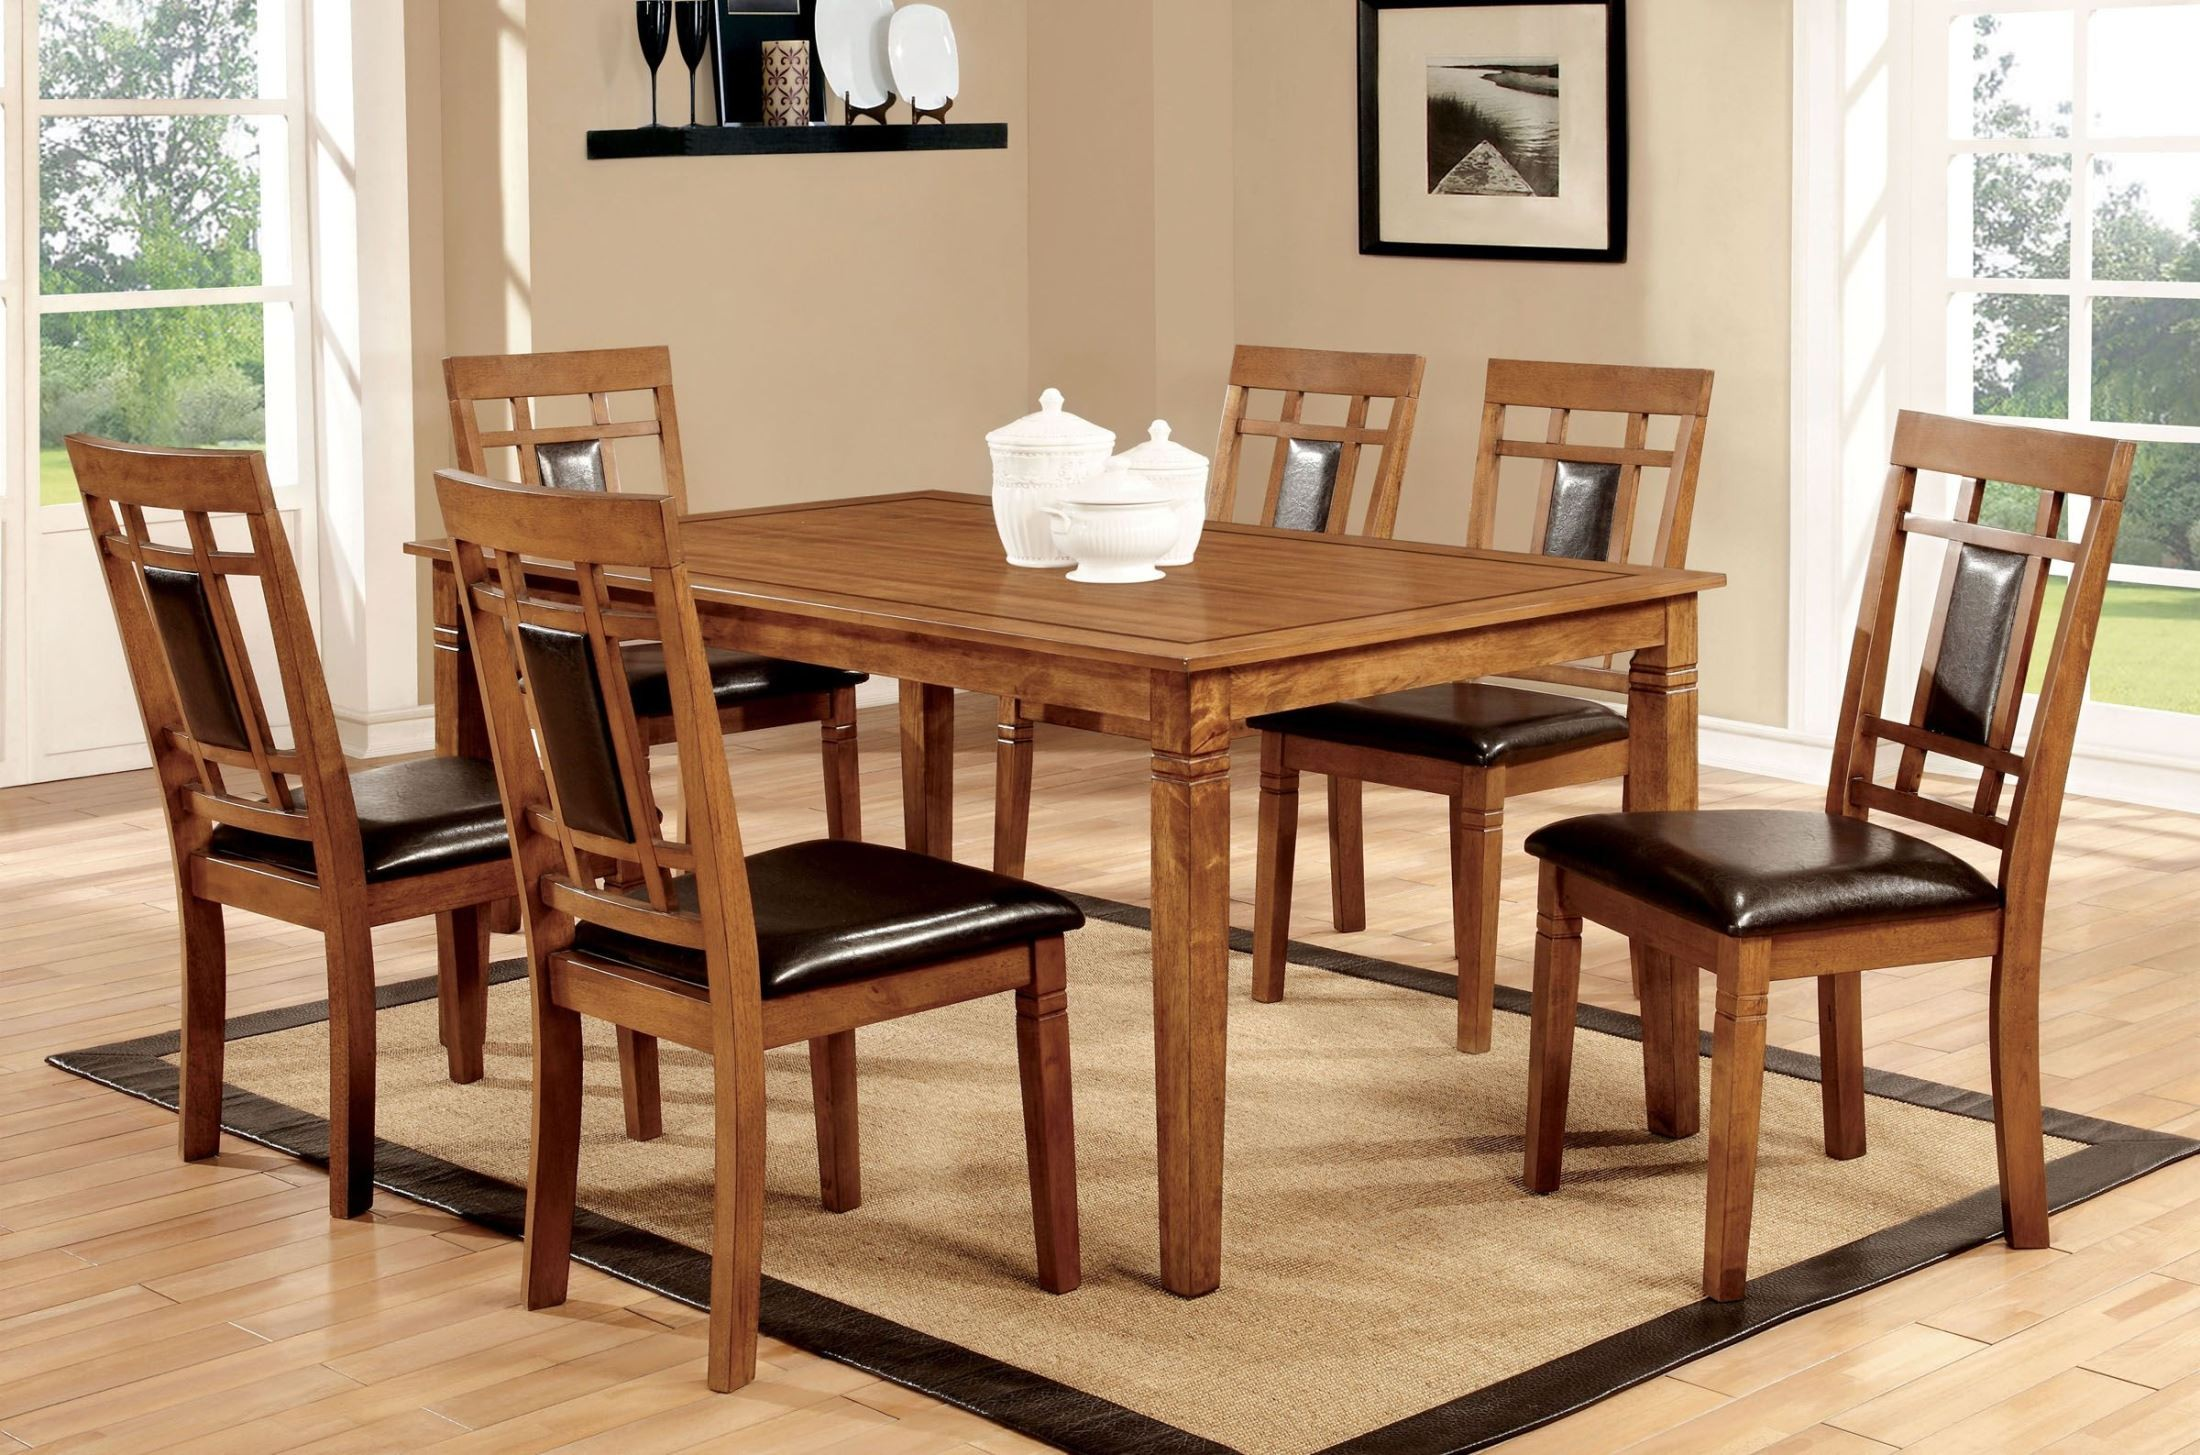 Freeman i light oak 7 piece dining room set from furniture for Furniture of america